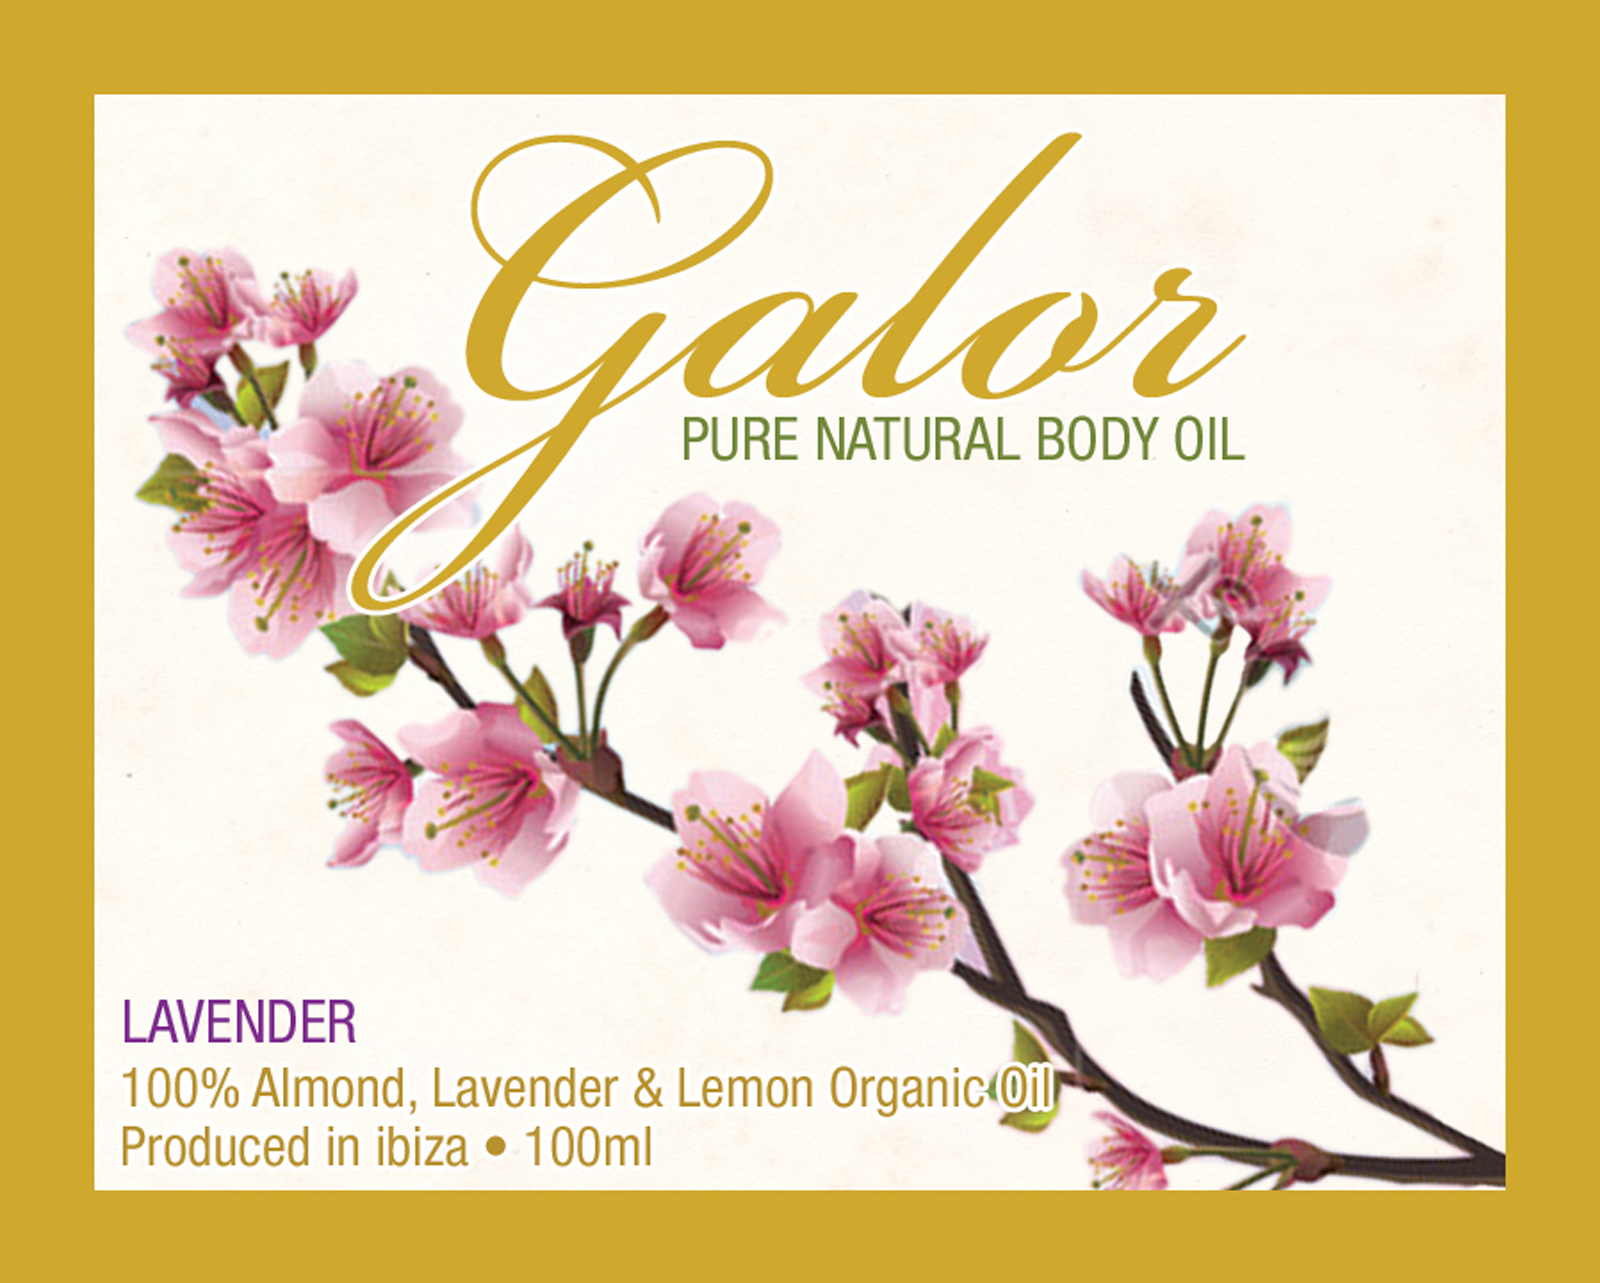 13-06_GALOR_OIL_LABEL_70x55mm_LAVENDER.png